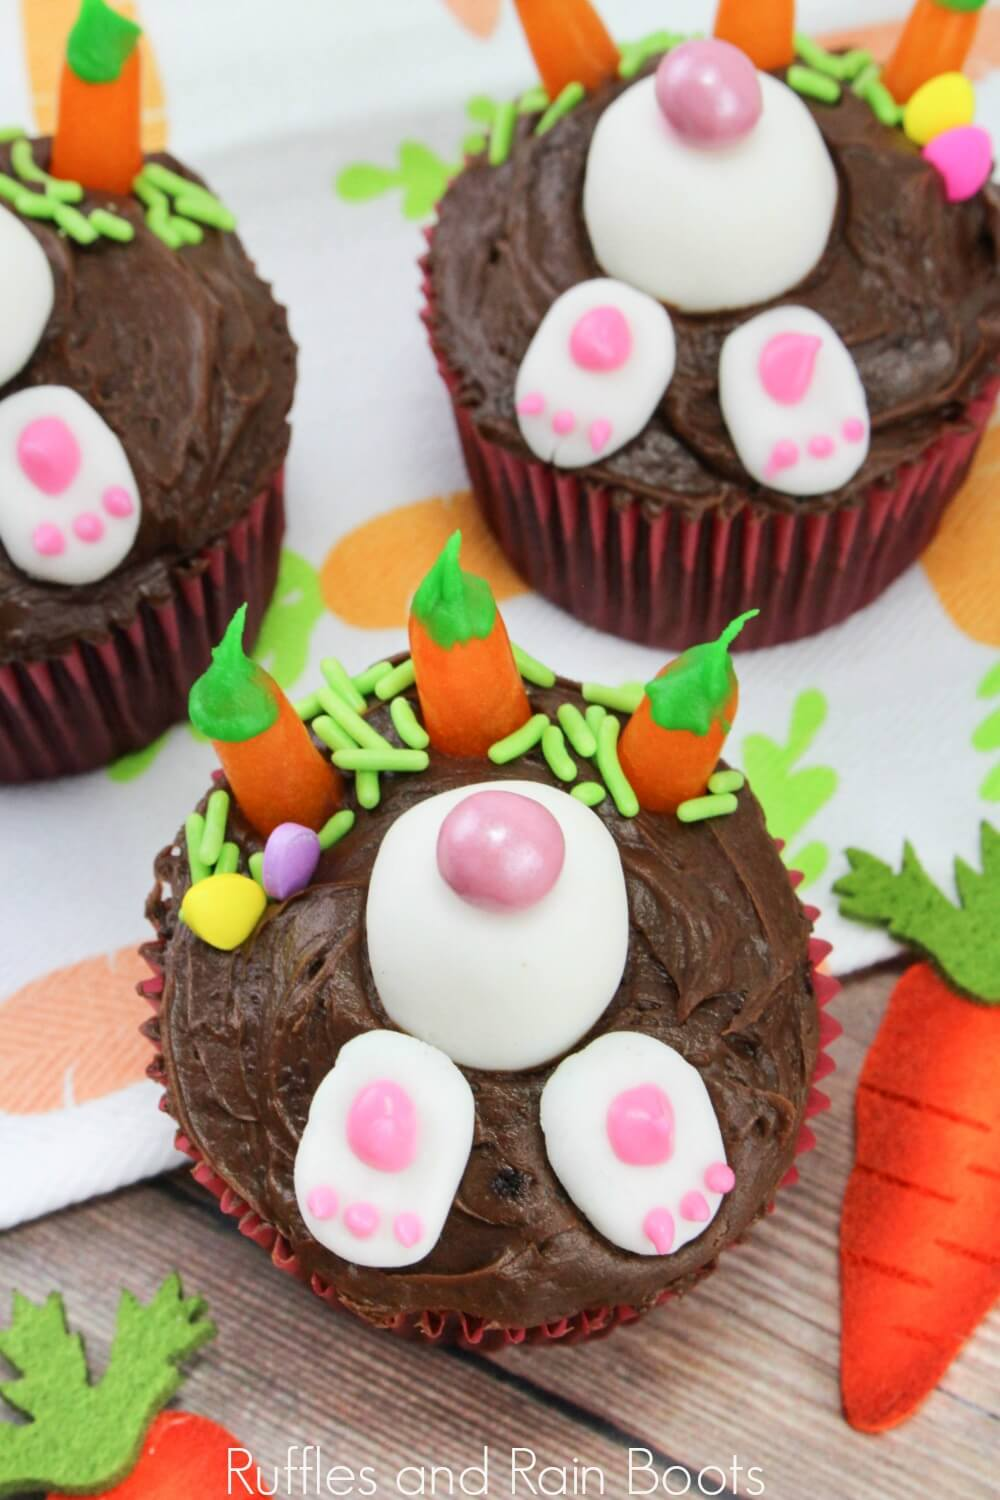 close up of bunny Easter cupcakes on carrot cloth and wooden table